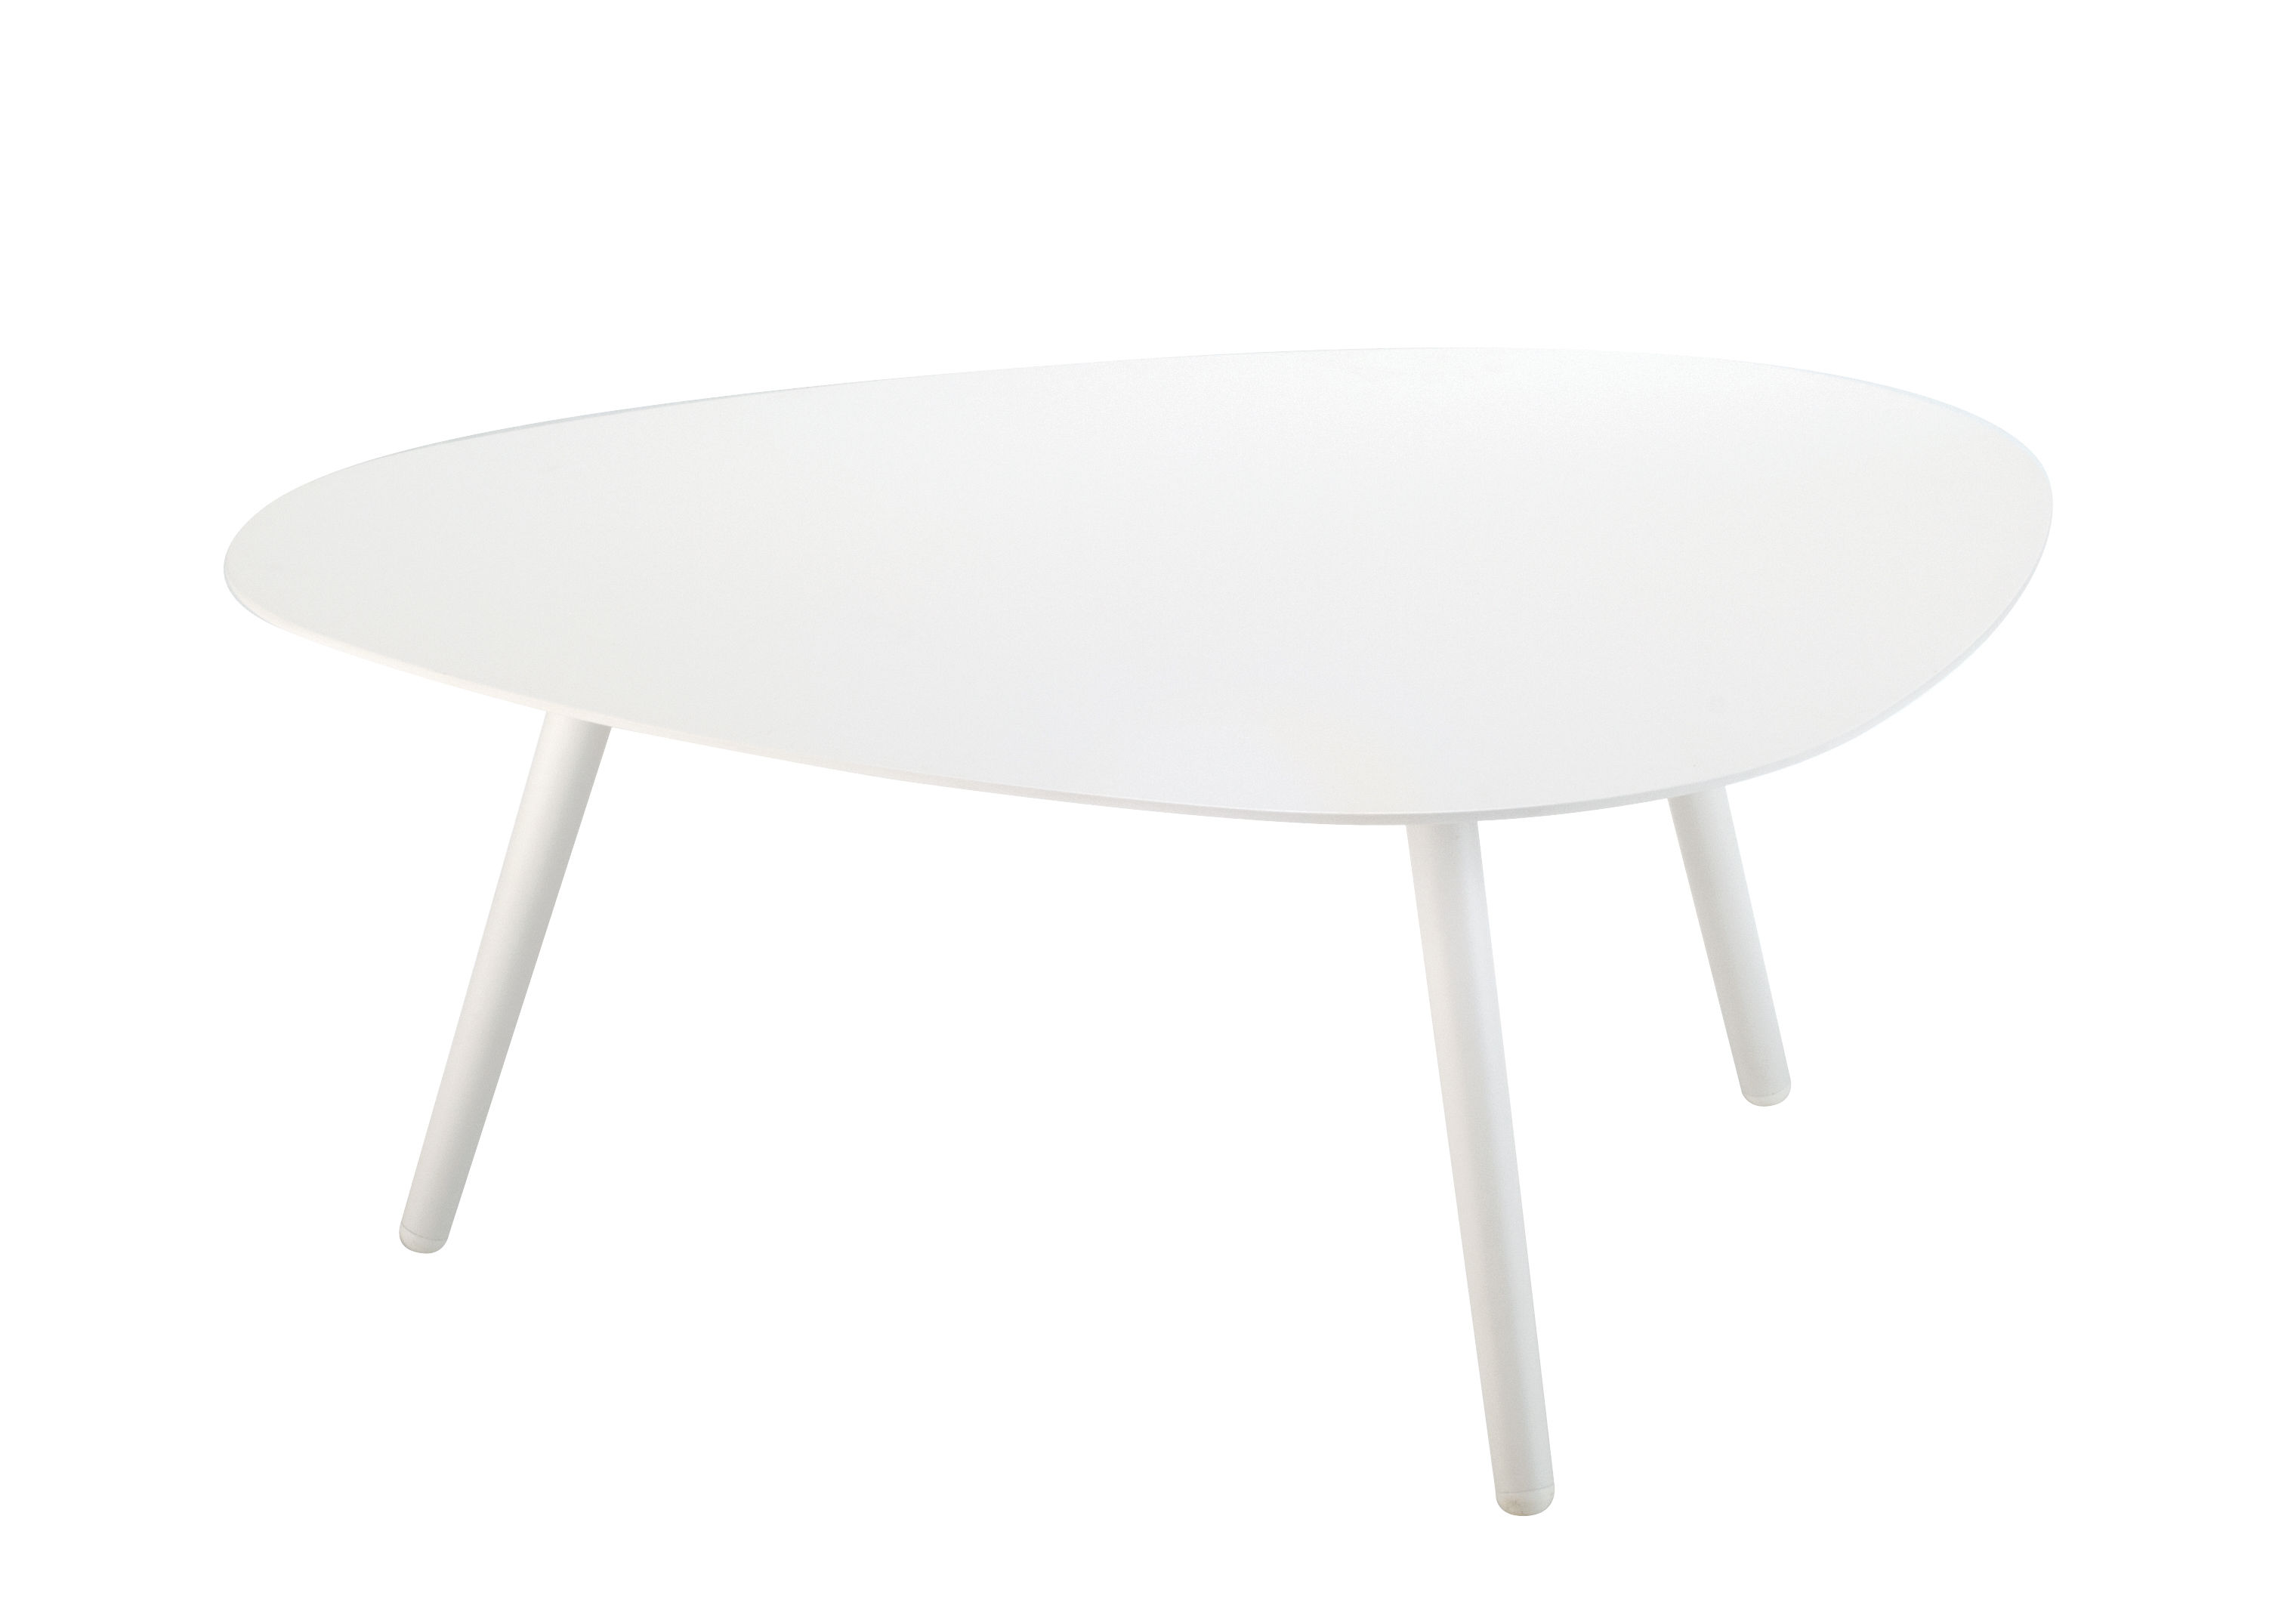 Furniture - Coffee Tables - Vanity Coffee table - 86 x 71 cm / Aluminium by Vlaemynck - White - Lacquered aluminium